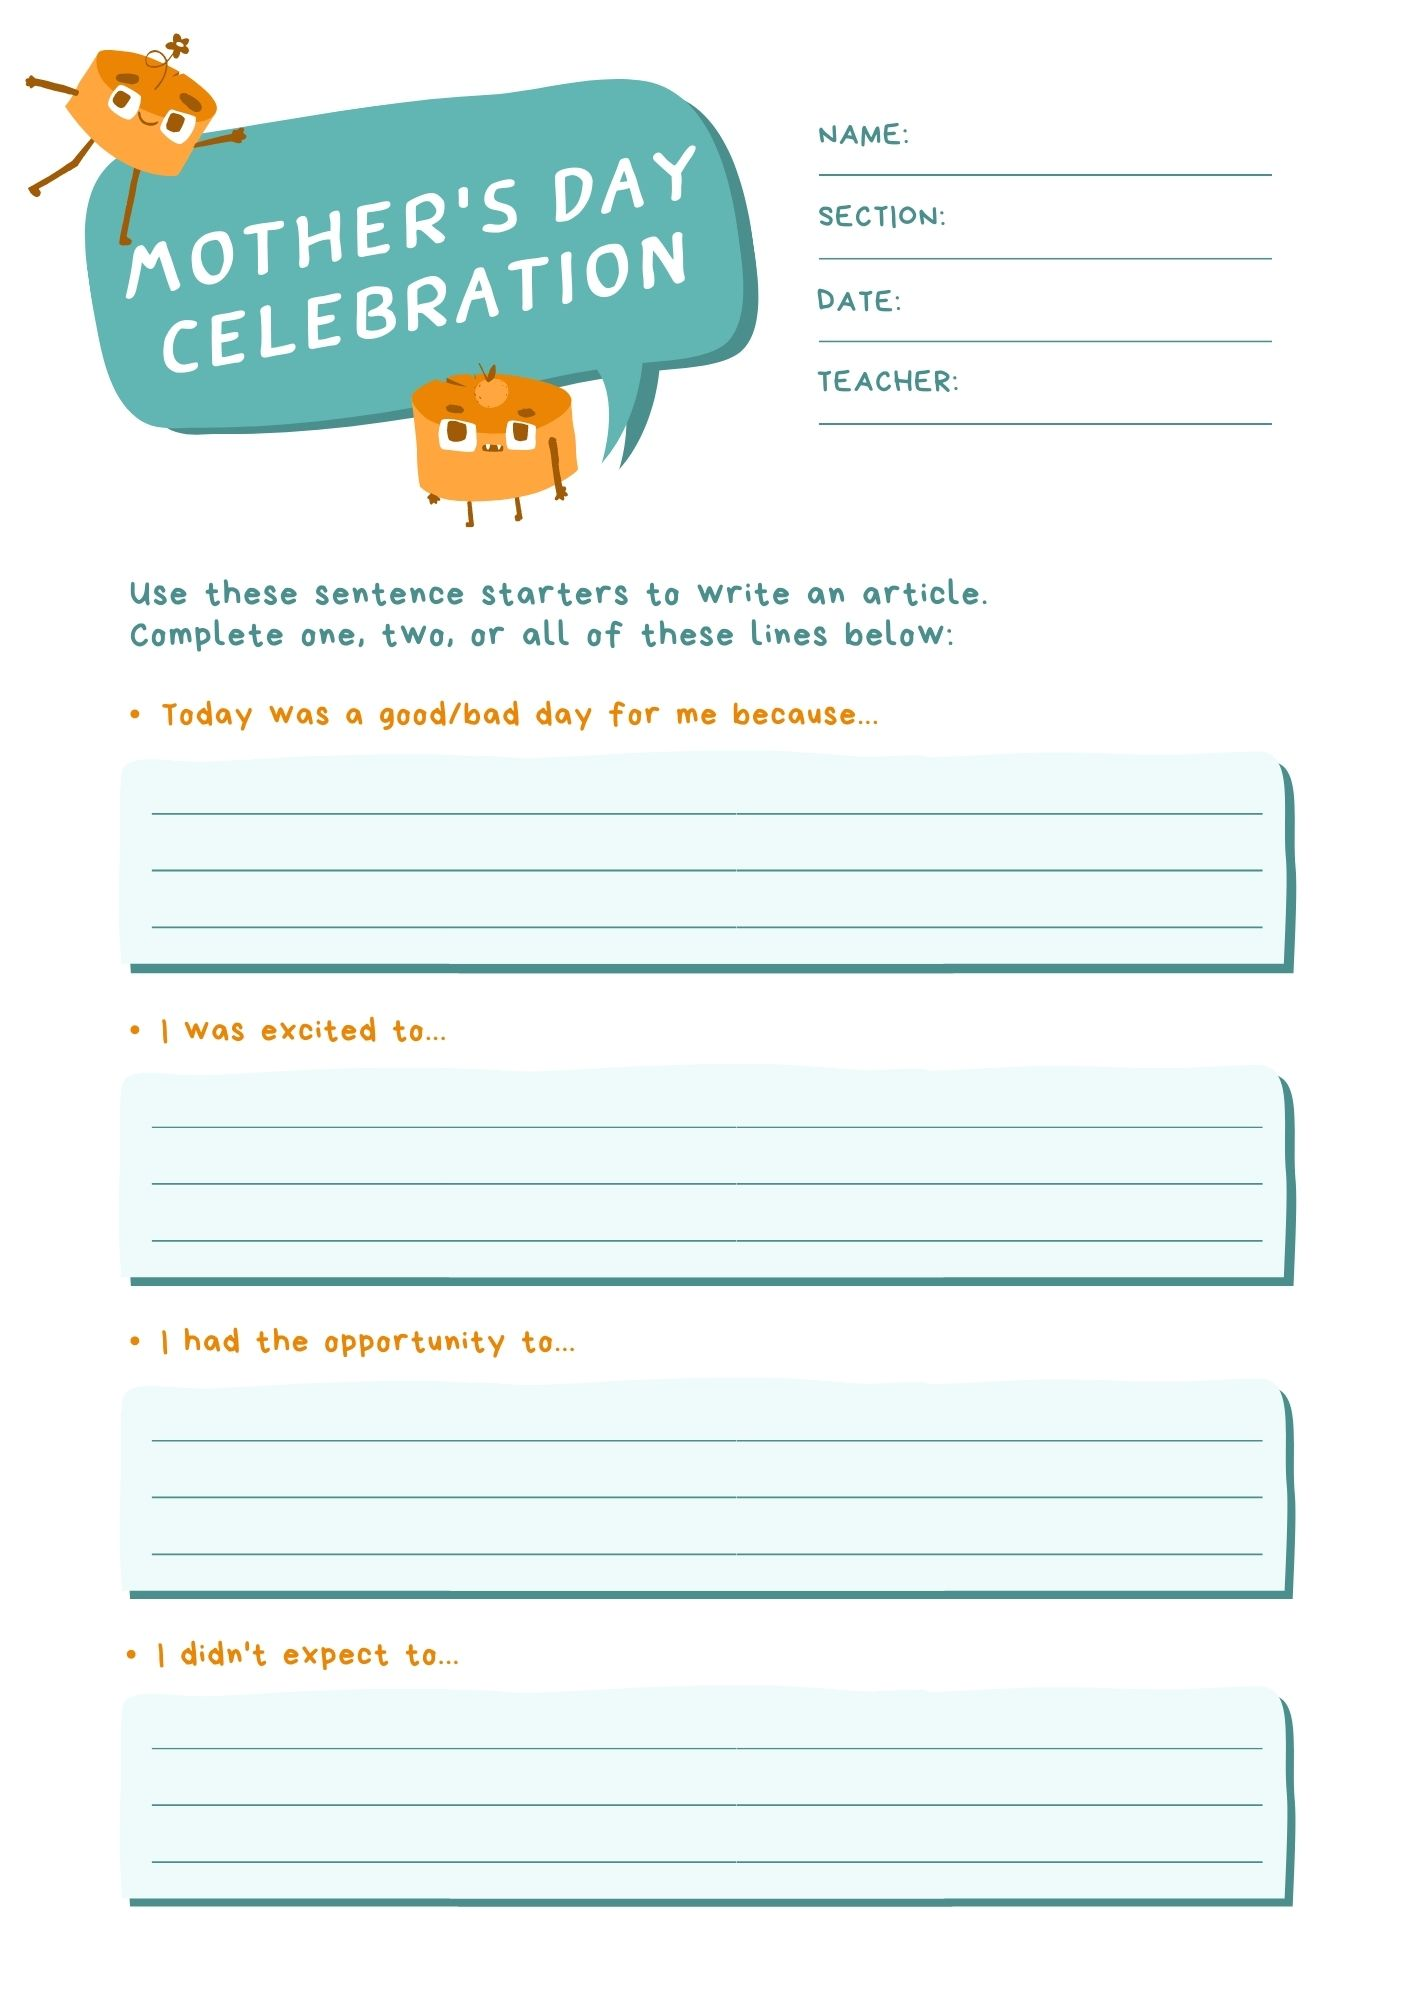 Free Printable Mother's Day Worksheet